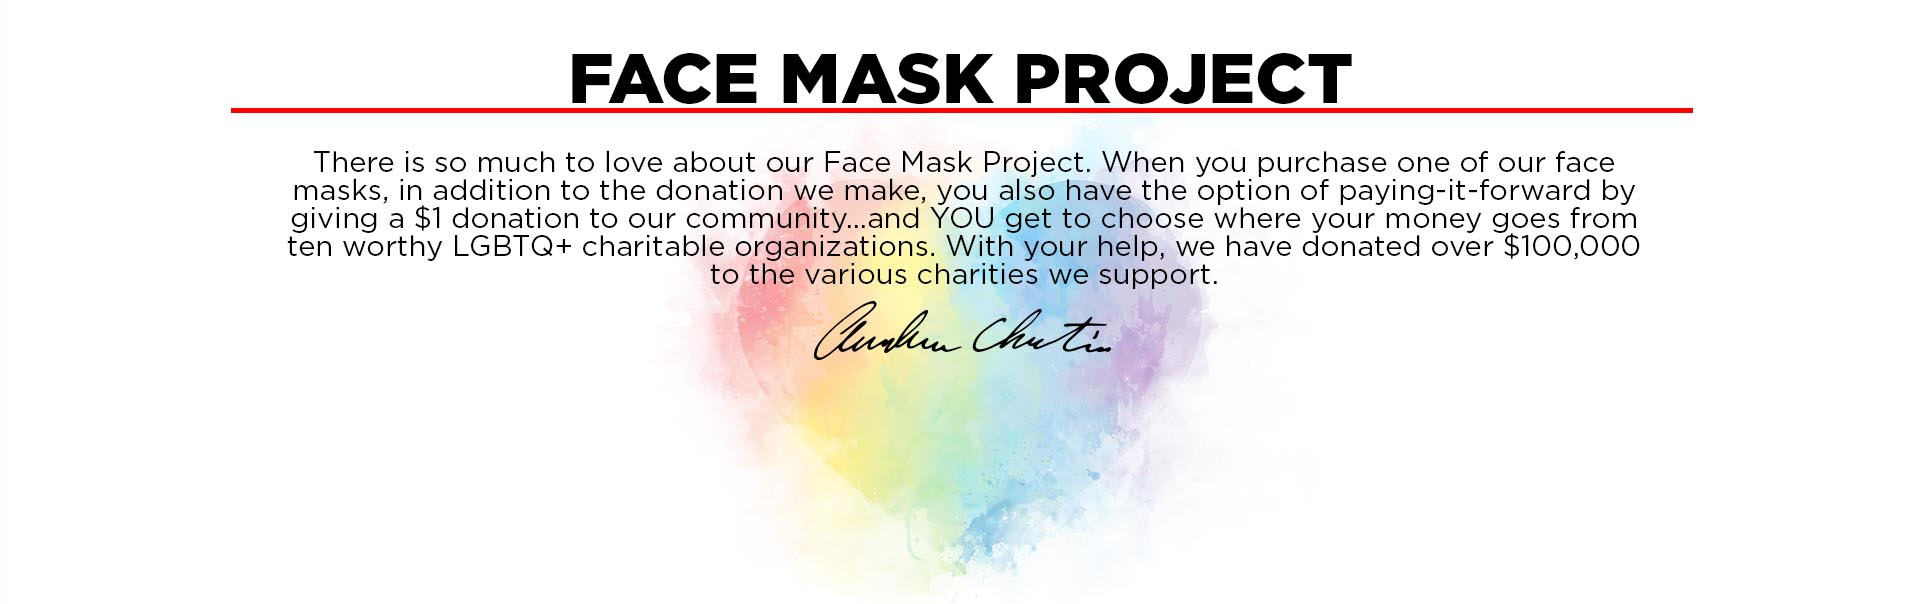 Face Mask Project - NEW